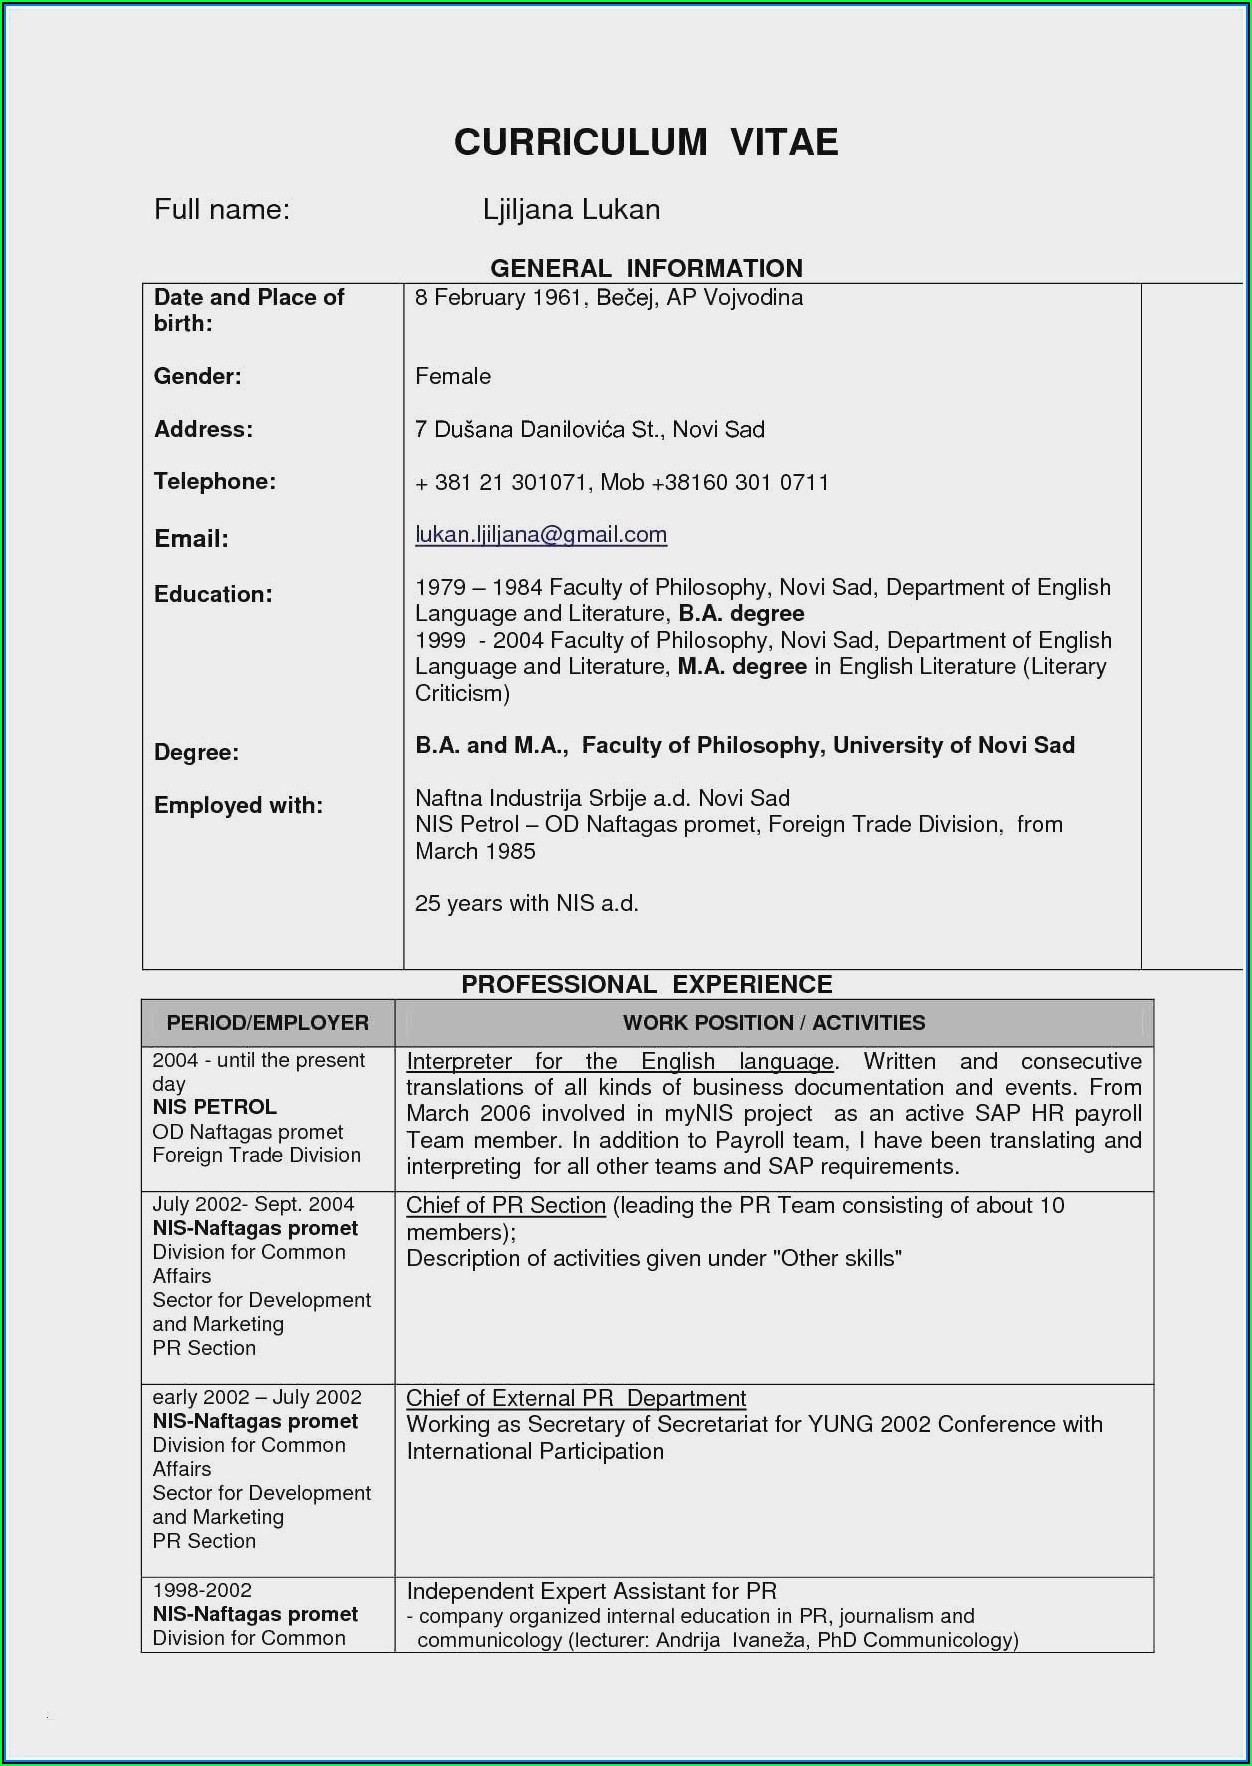 Civil Engineer Resume Format Free Download